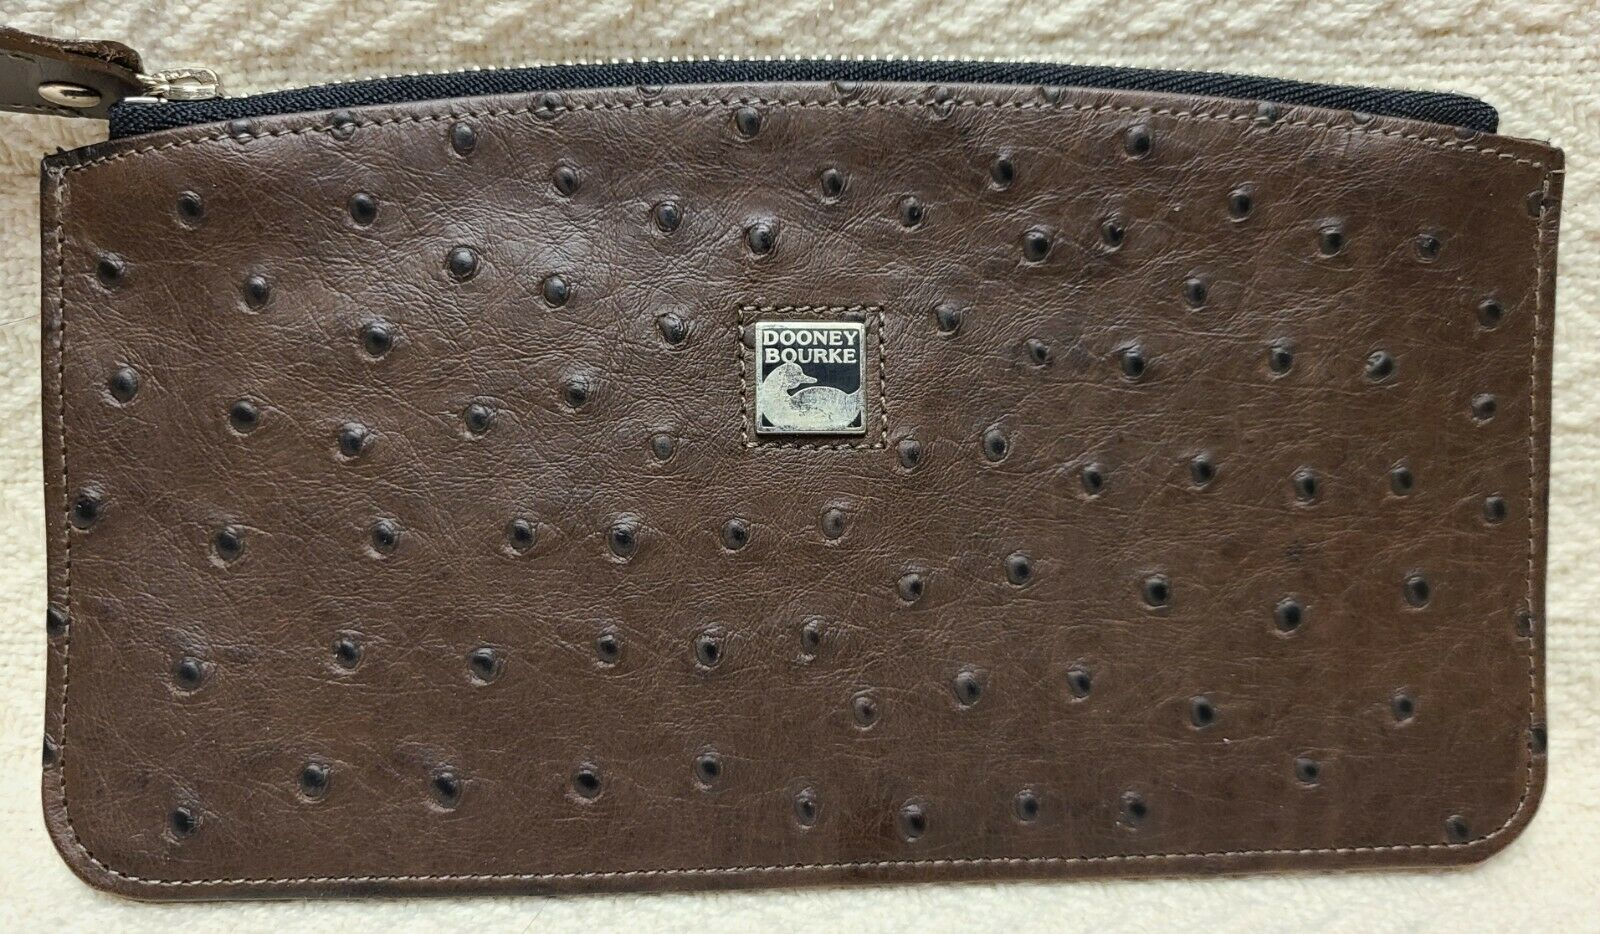 Dooney & Bourke Brown Ostrich Embossed Leather Coin Bag